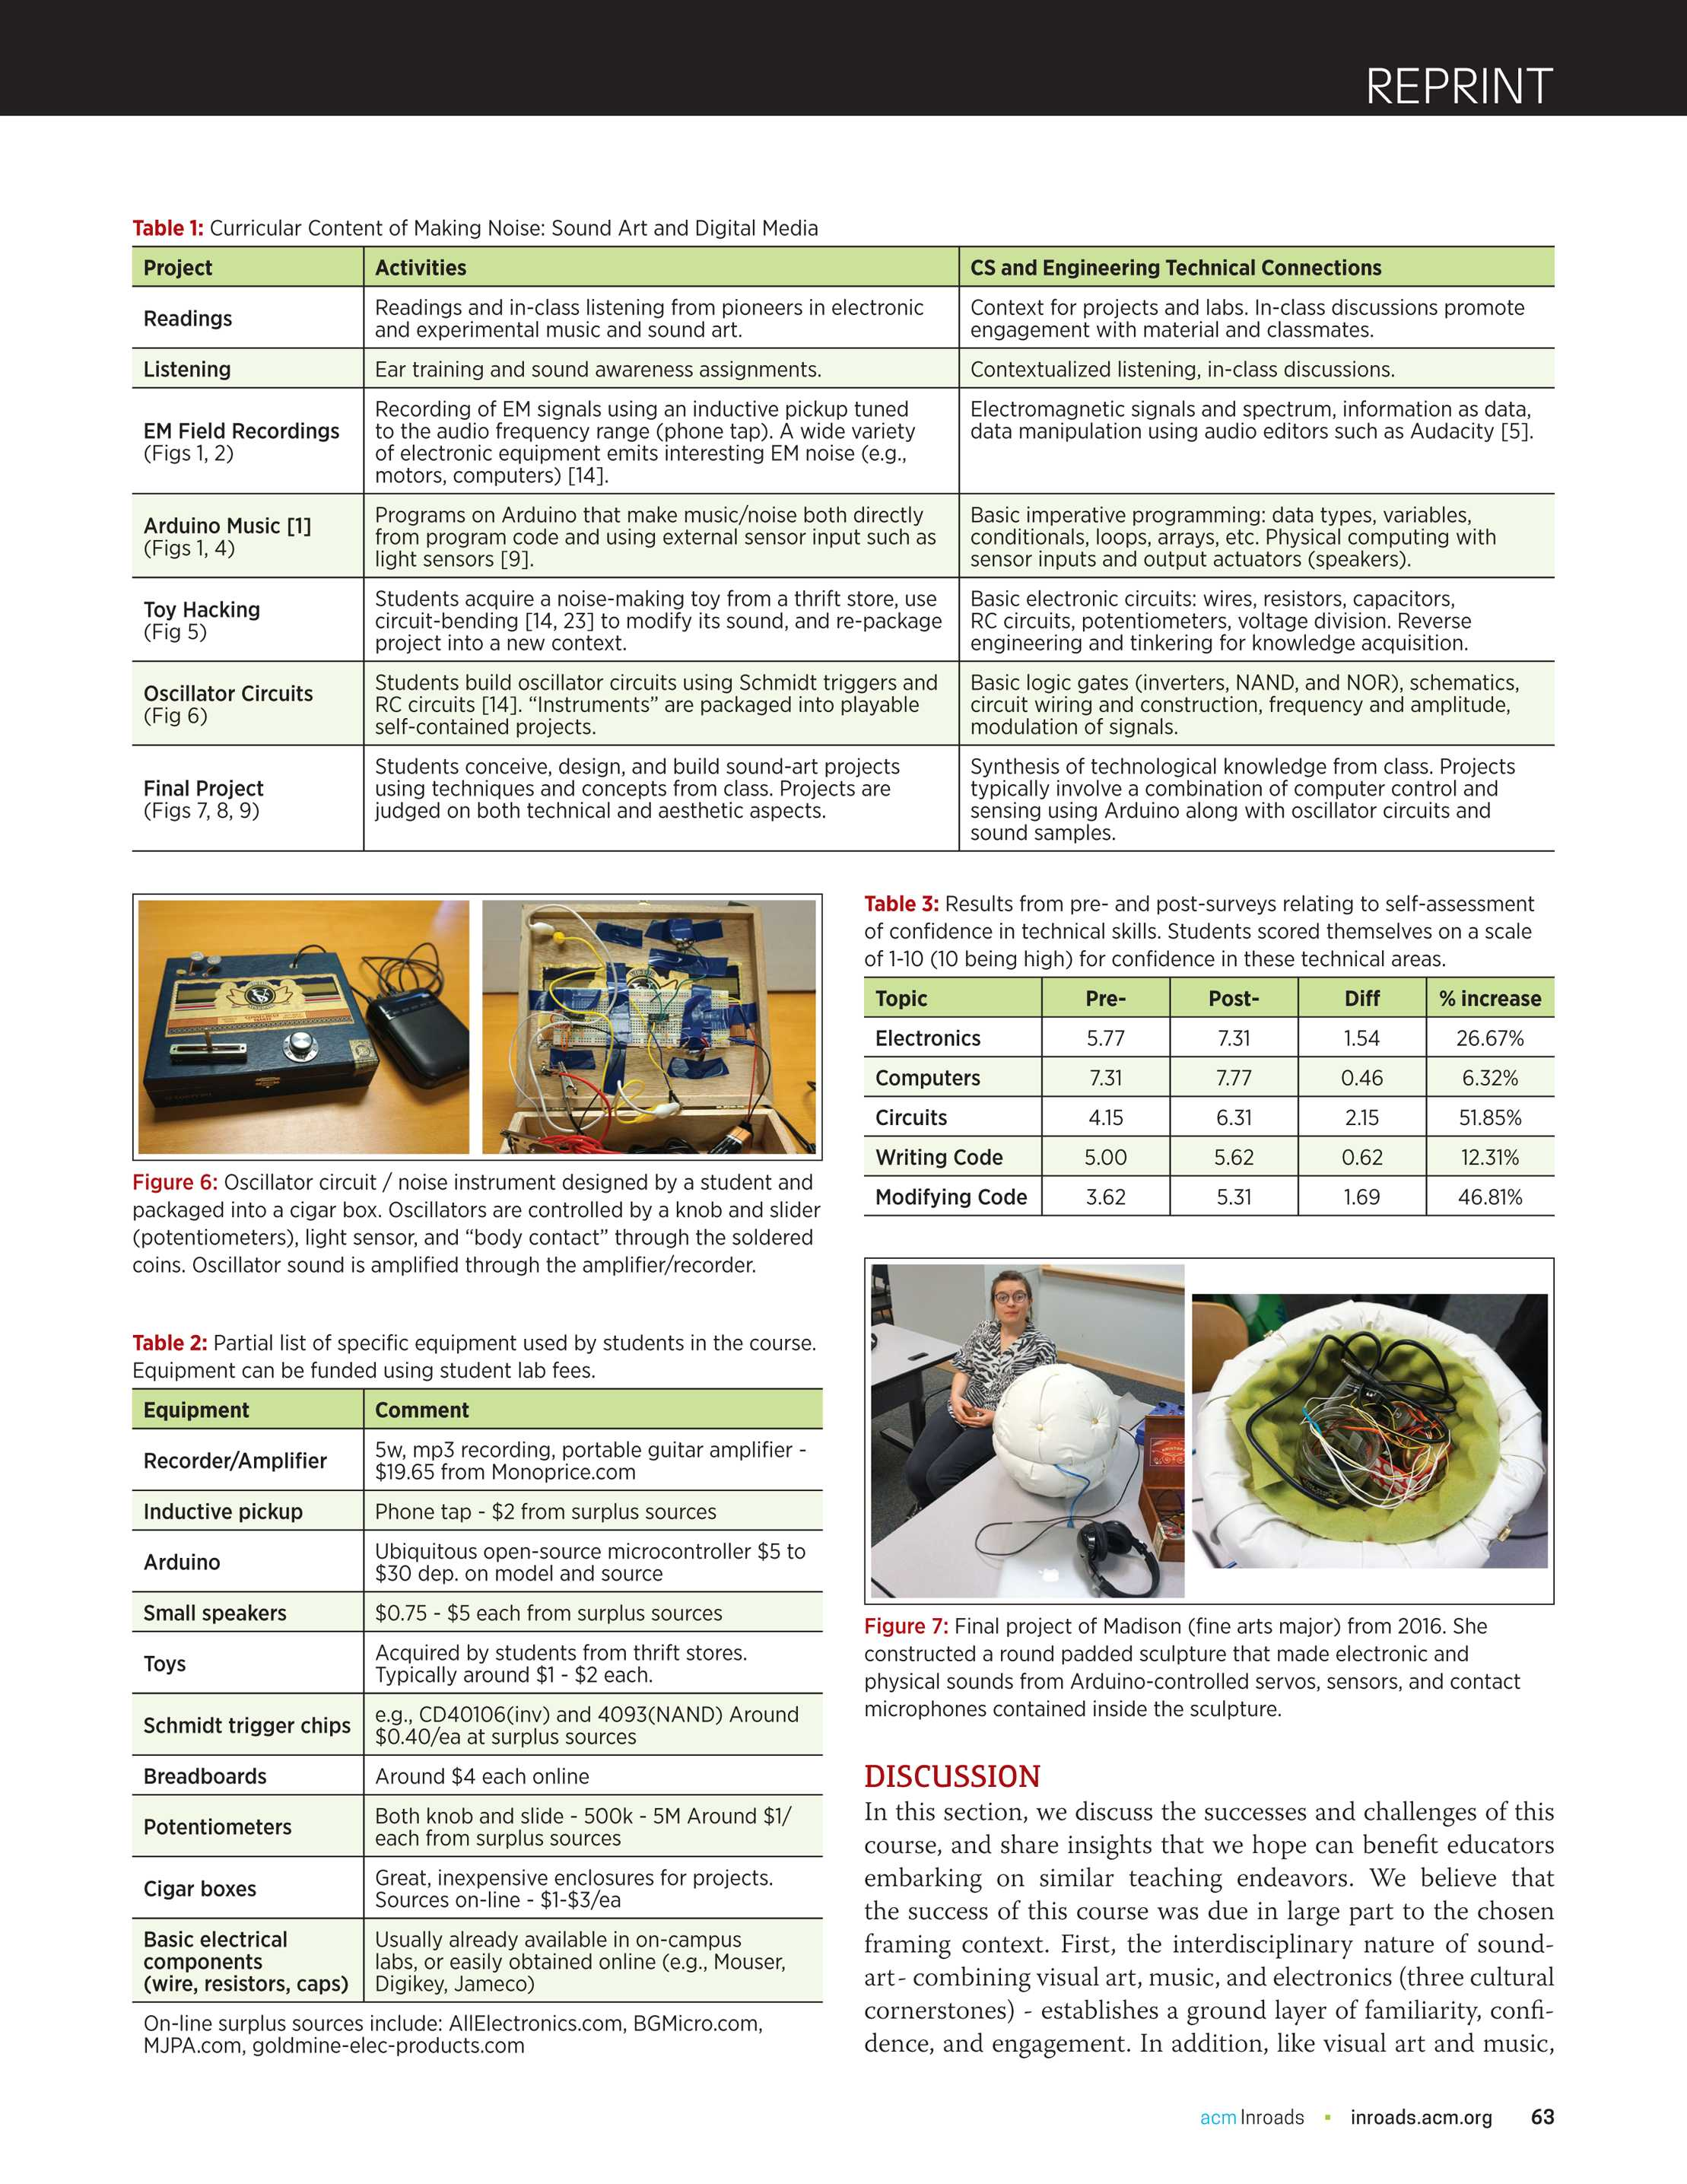 Inroads June 2017 Page 63 Basic Electronic Circuits Projects